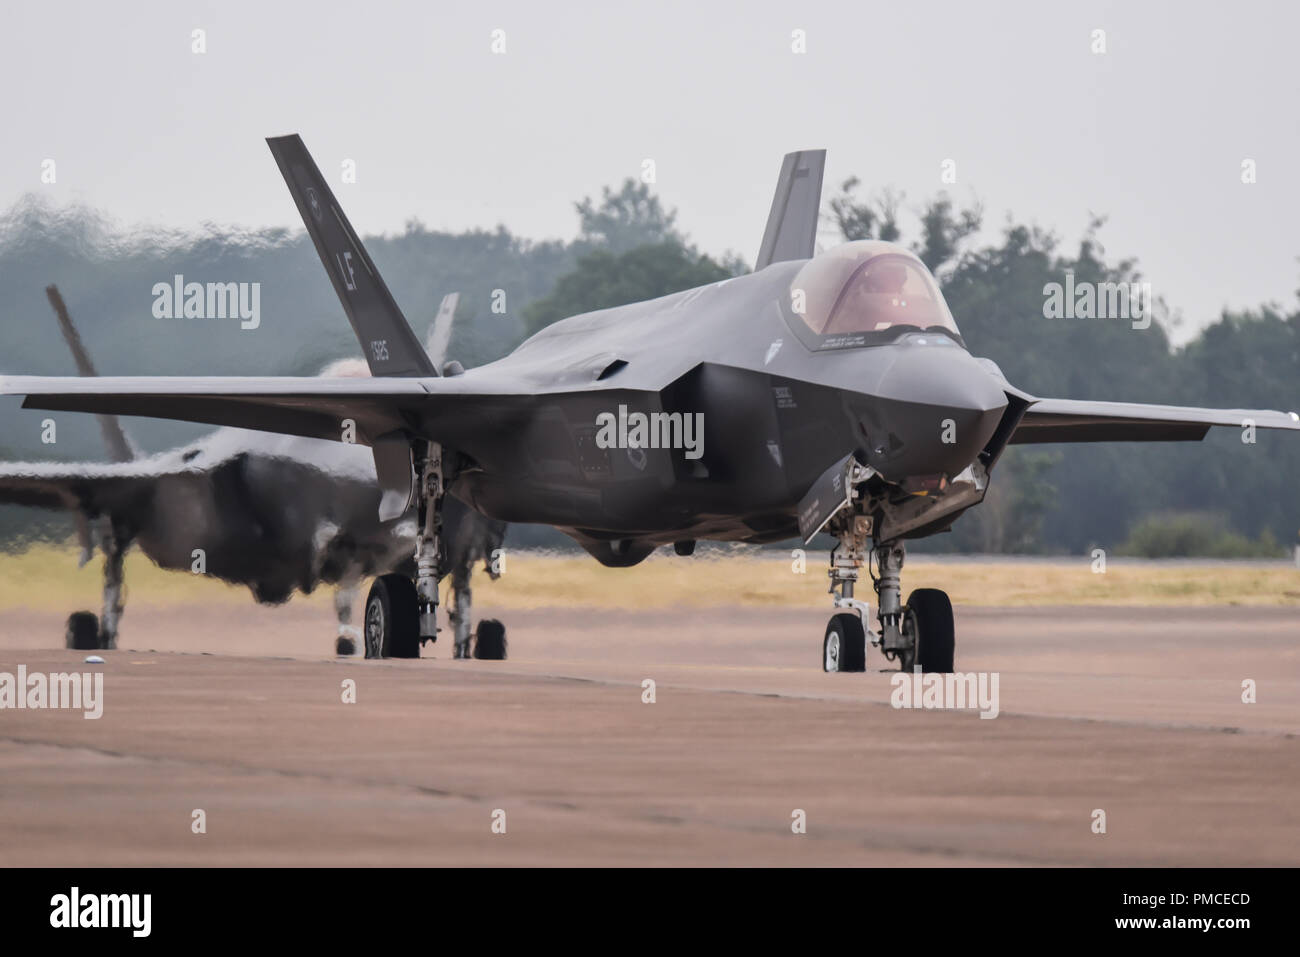 US Air Force Lockheed Martin F-35A Lightning II at the Royal International Air Tattoo, RIAT, RAF Fairford. Taxiing in pair Stock Photo